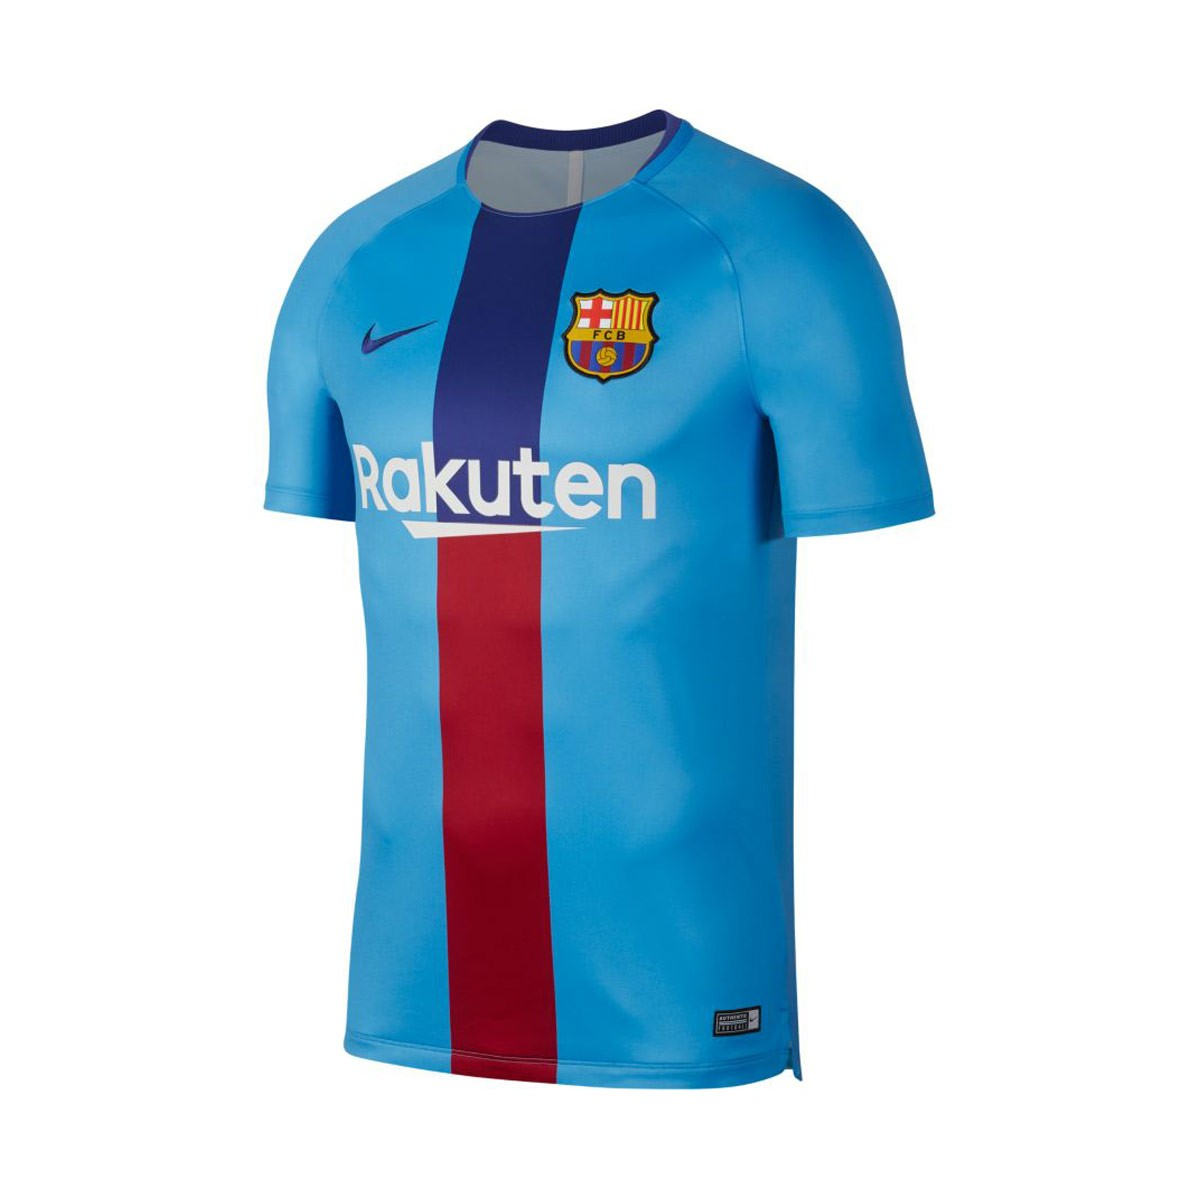 324d9cd7a80 Jersey Nike Dry FC Barcelona Squad 2018-2019 Equator blue-Deep royal ...